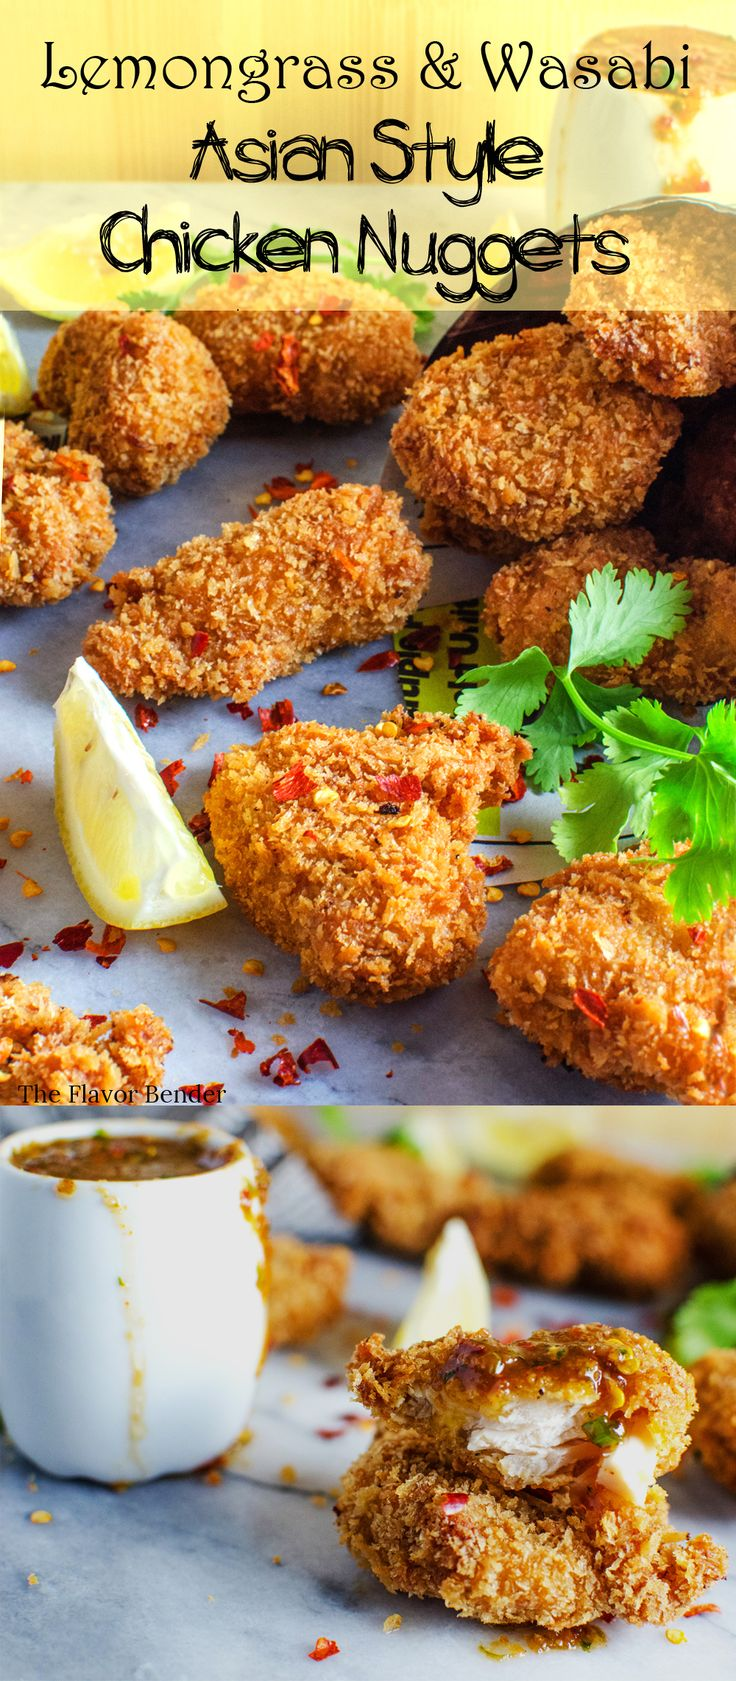 Panko crumbed Lemongrass and Wasabi Chicken Nuggets from scratch! These Asian-style Chicken nuggets are crunchy, flavor packed AND freezer friendly! Infinitely better than store bought or fast food!